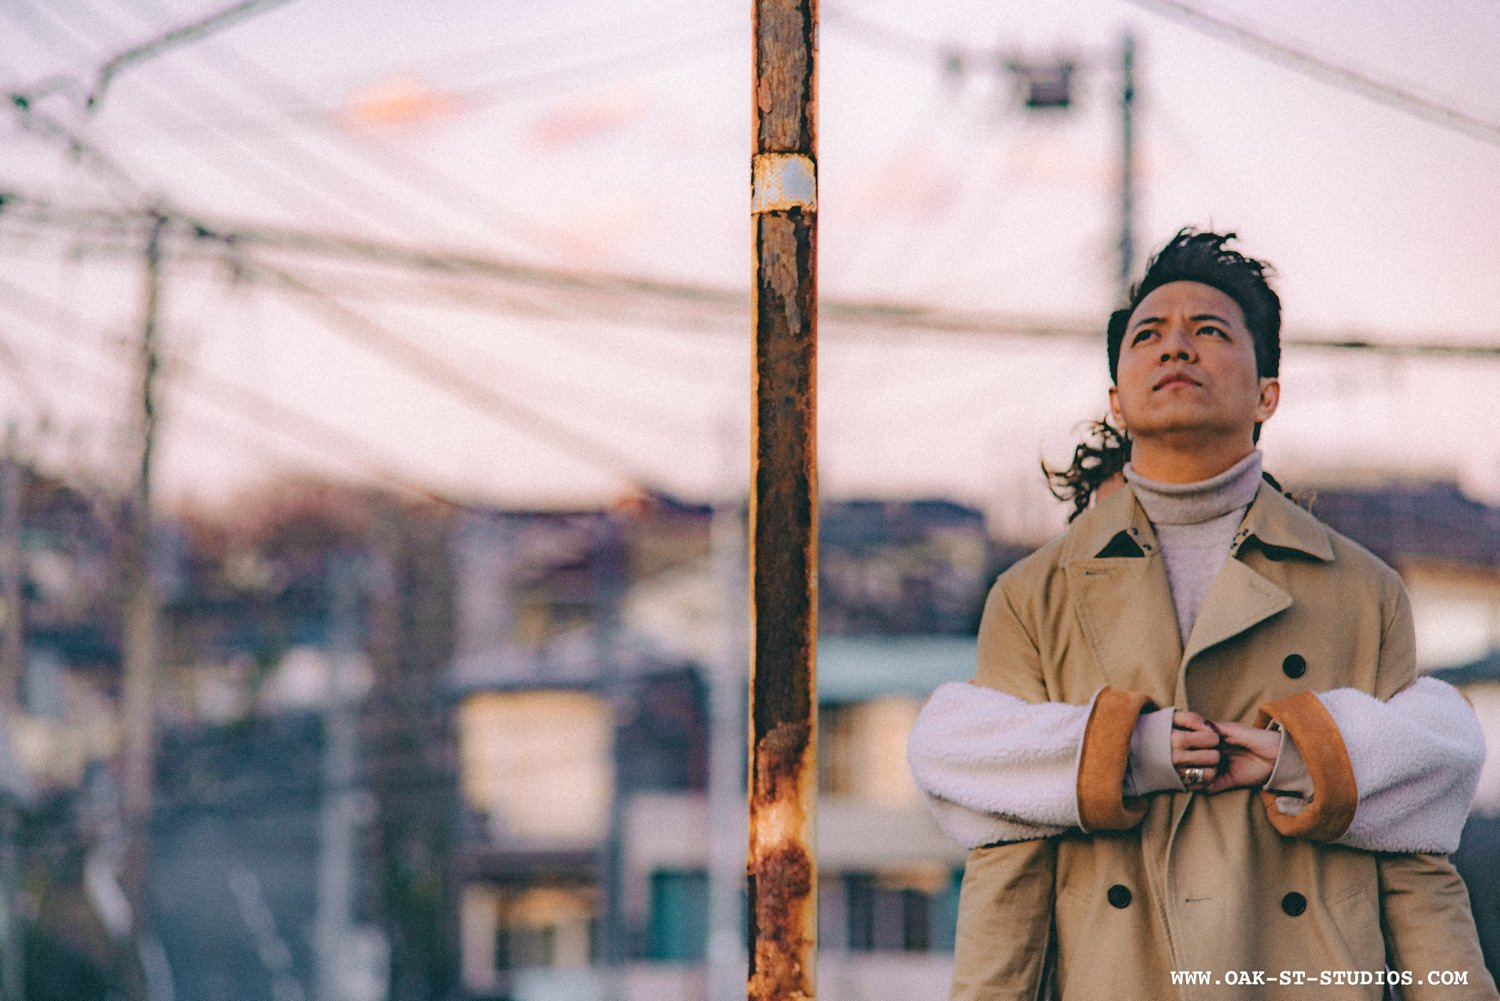 Oak St Studios - KZ Tandingan and TJ Monterde Tokyo Japan Prenup Engagement Session Photographer